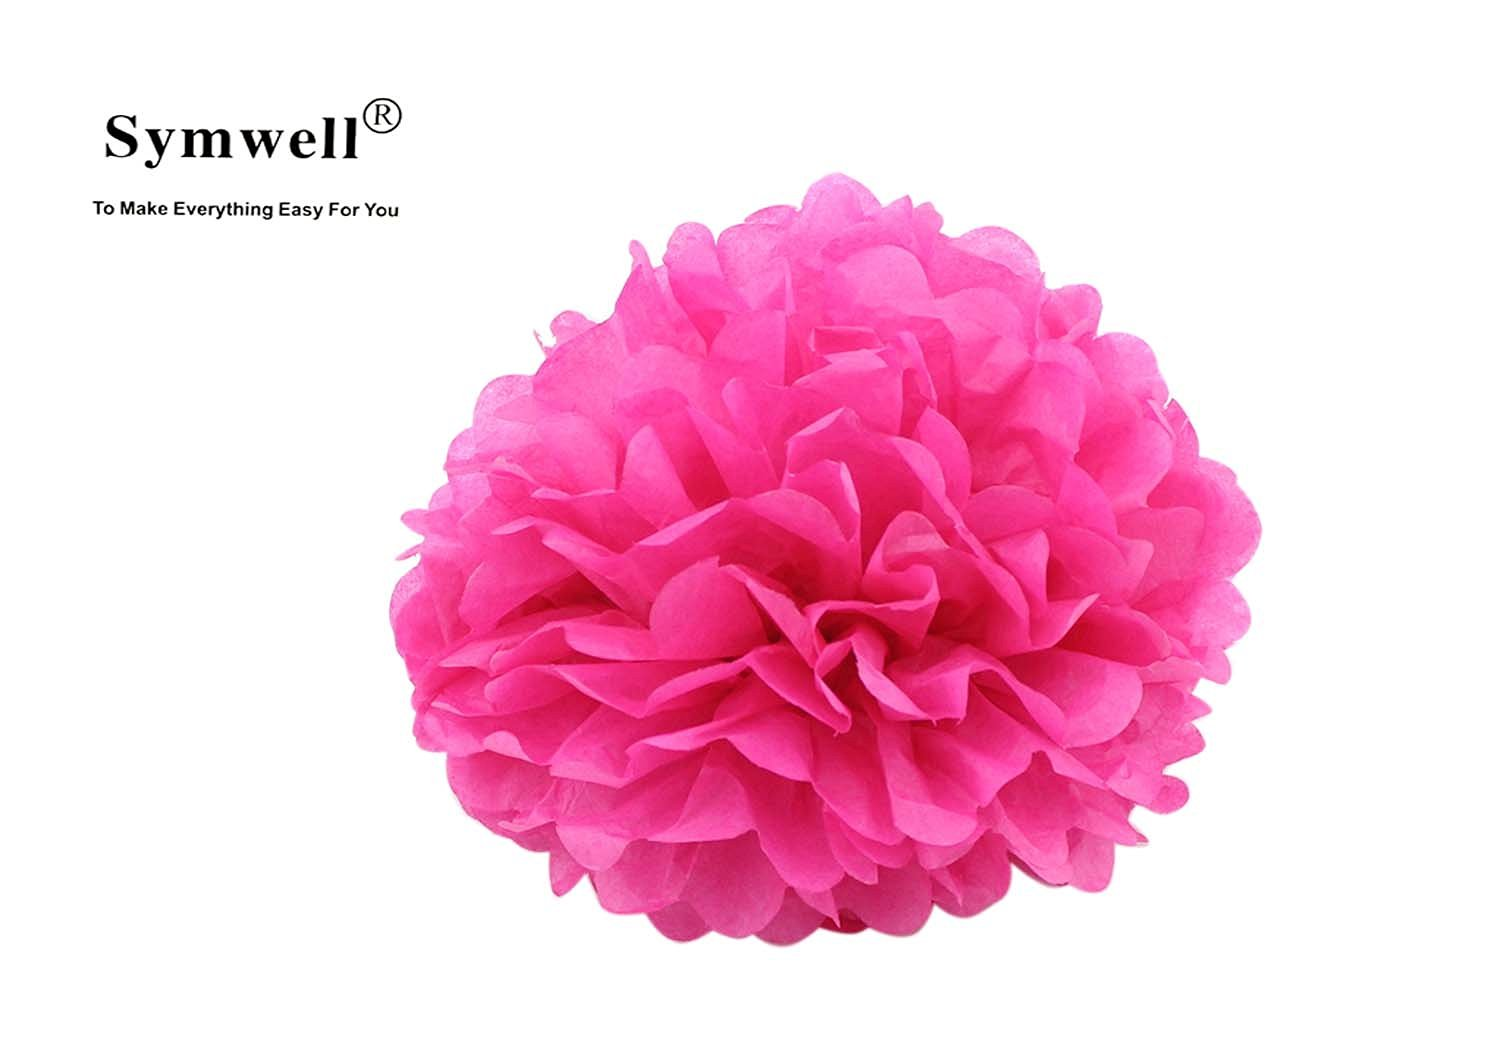 Buy Symwell 18 Pcs Party Tissue Paper Flowers Pom Poms Flowers Of